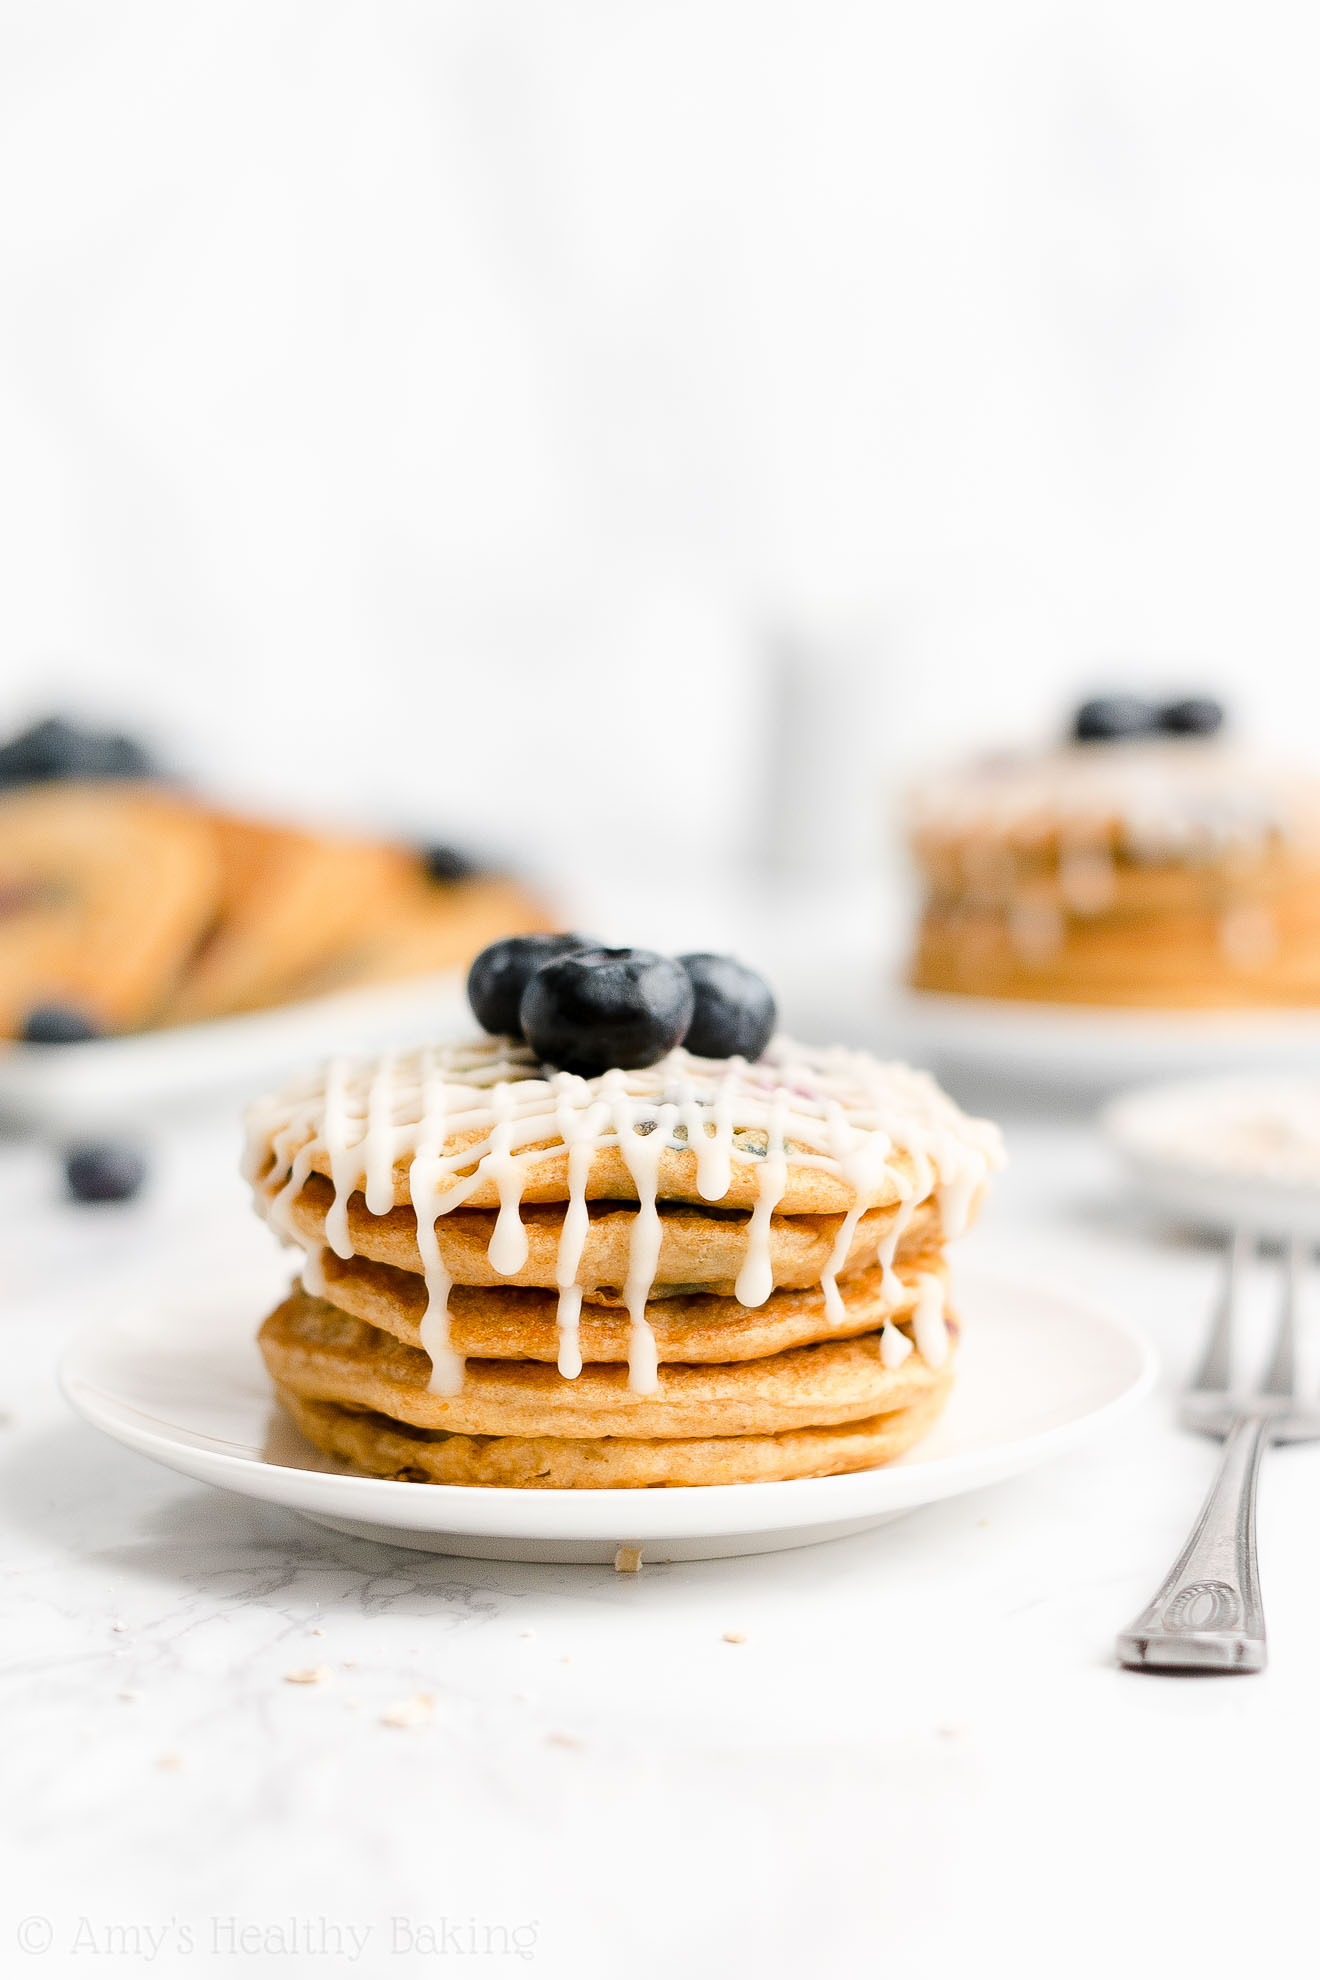 Easy Healthy Low Fat No Sugar Fluffy Greek Yogurt Blueberry Oatmeal Pancakes